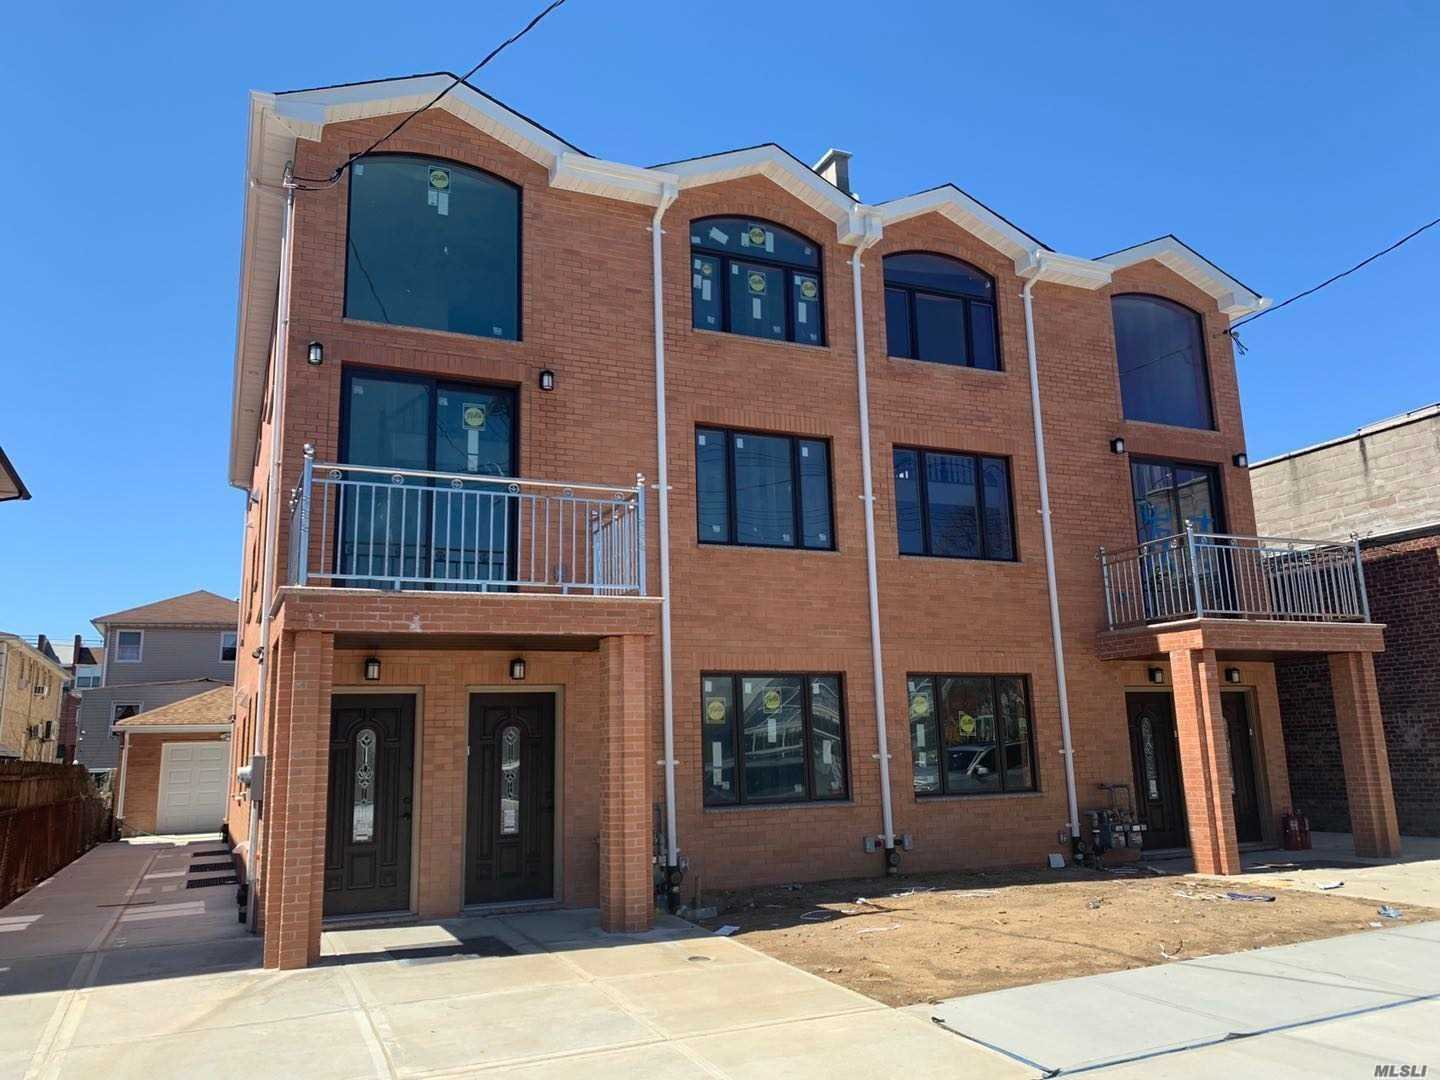 Property for sale at 46-12 162nd Street, Flushing NY 11358, Flushing,  New York 11358